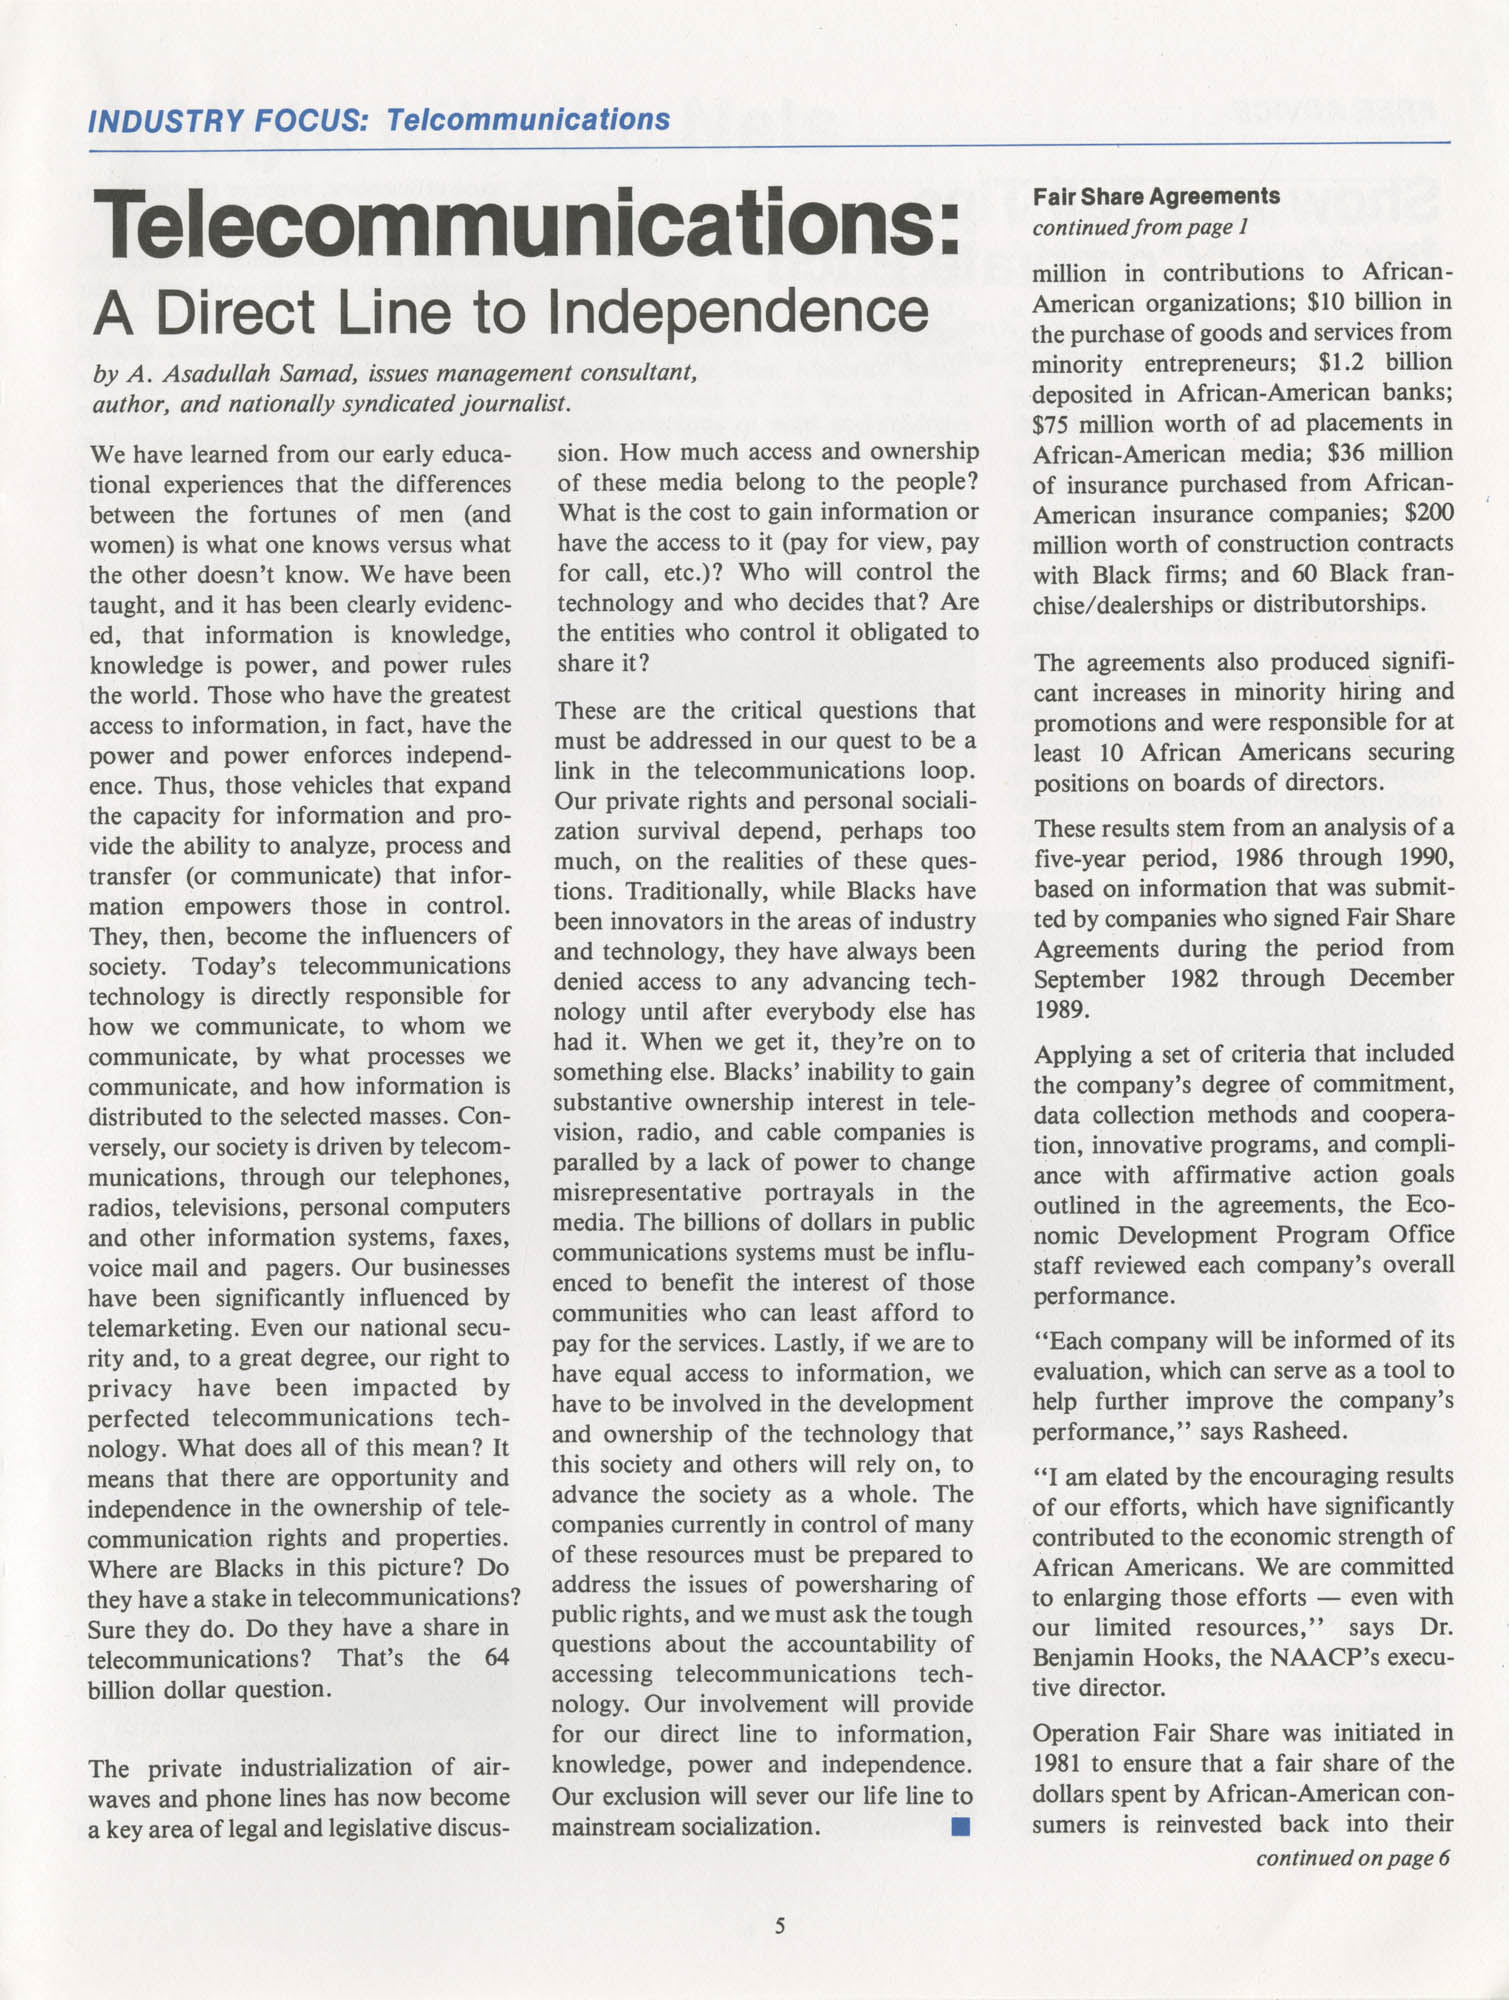 NAACP Commerce and Trade Council Economic Report, Vol. 1, No. 2, Spring 1992, Page 5